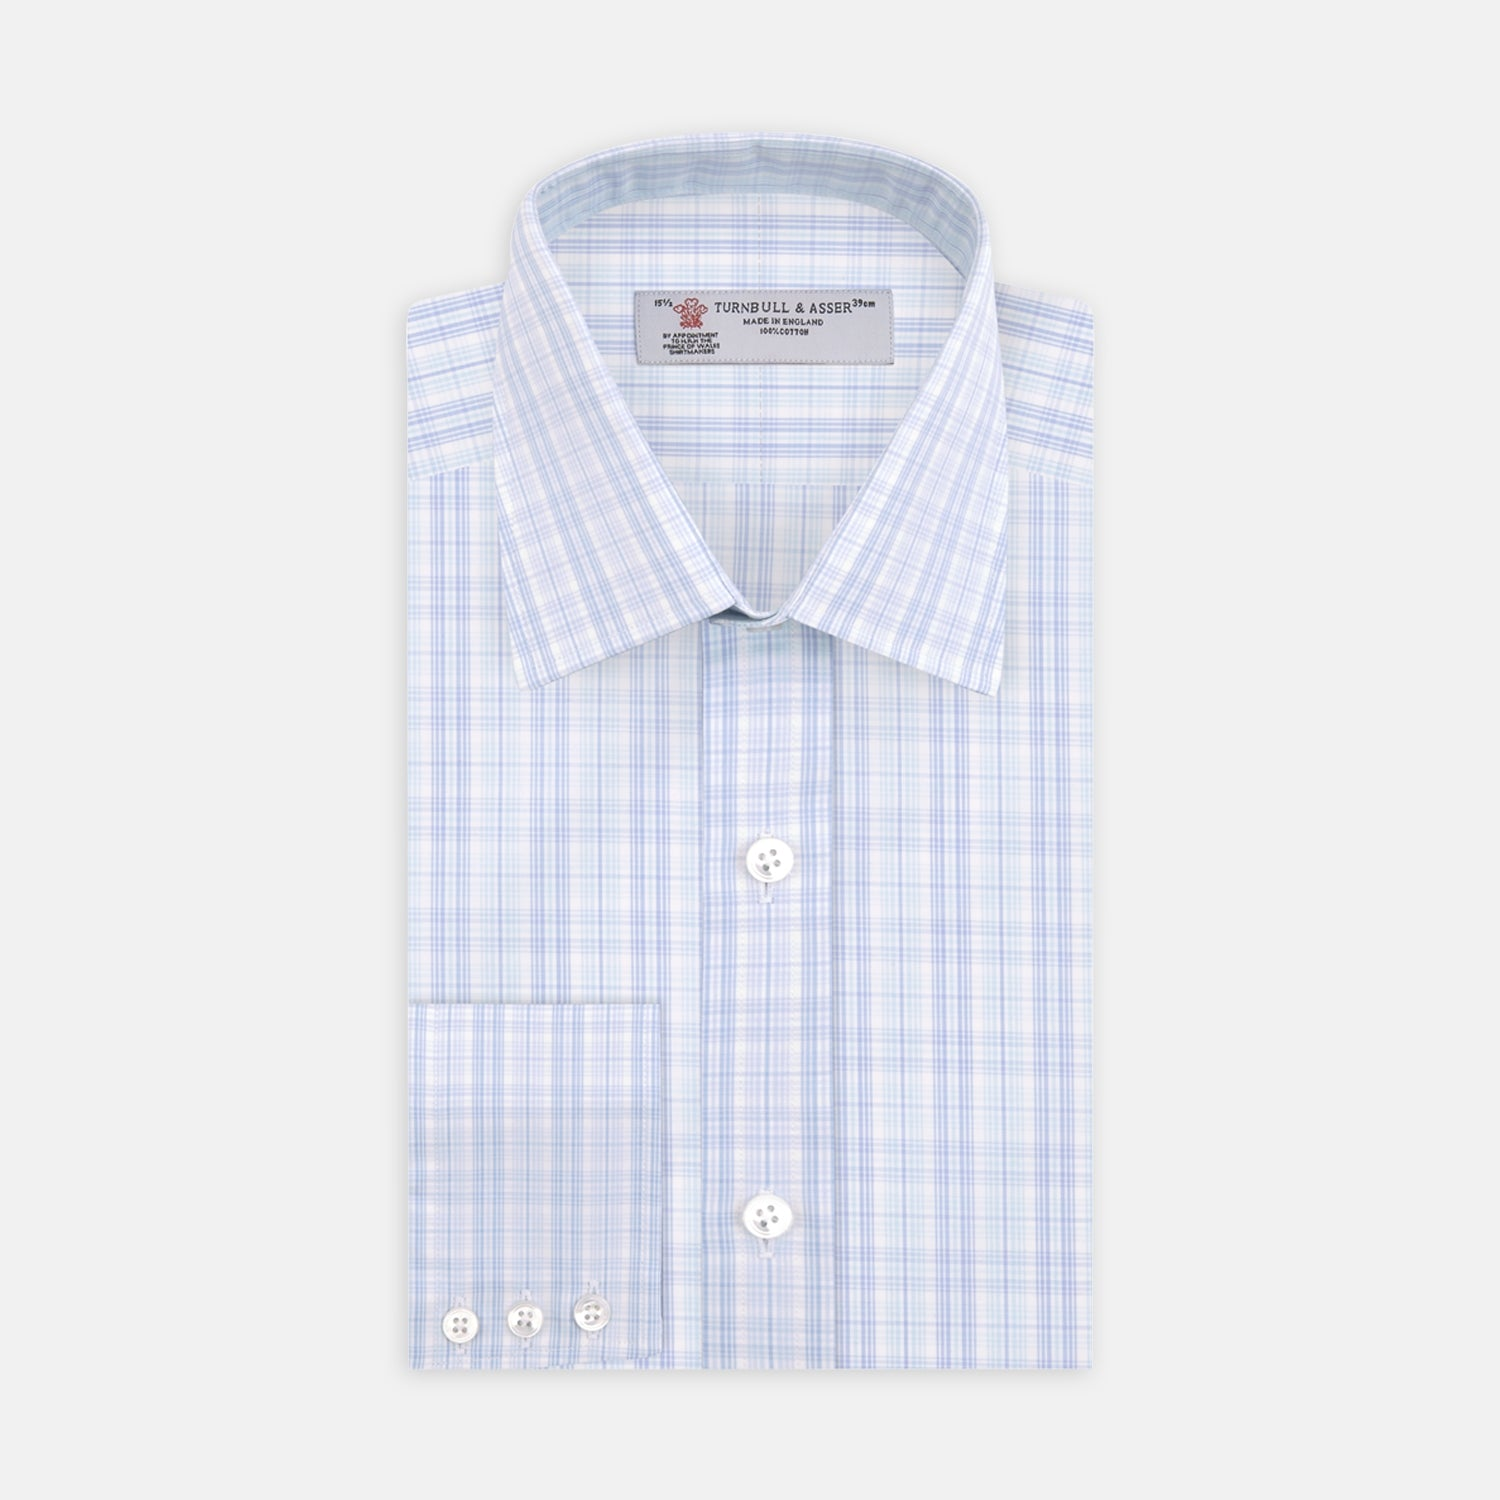 Blue and Green Business Plaid Check Shirt with Classic T&A Collar and 3-Button Cuffs